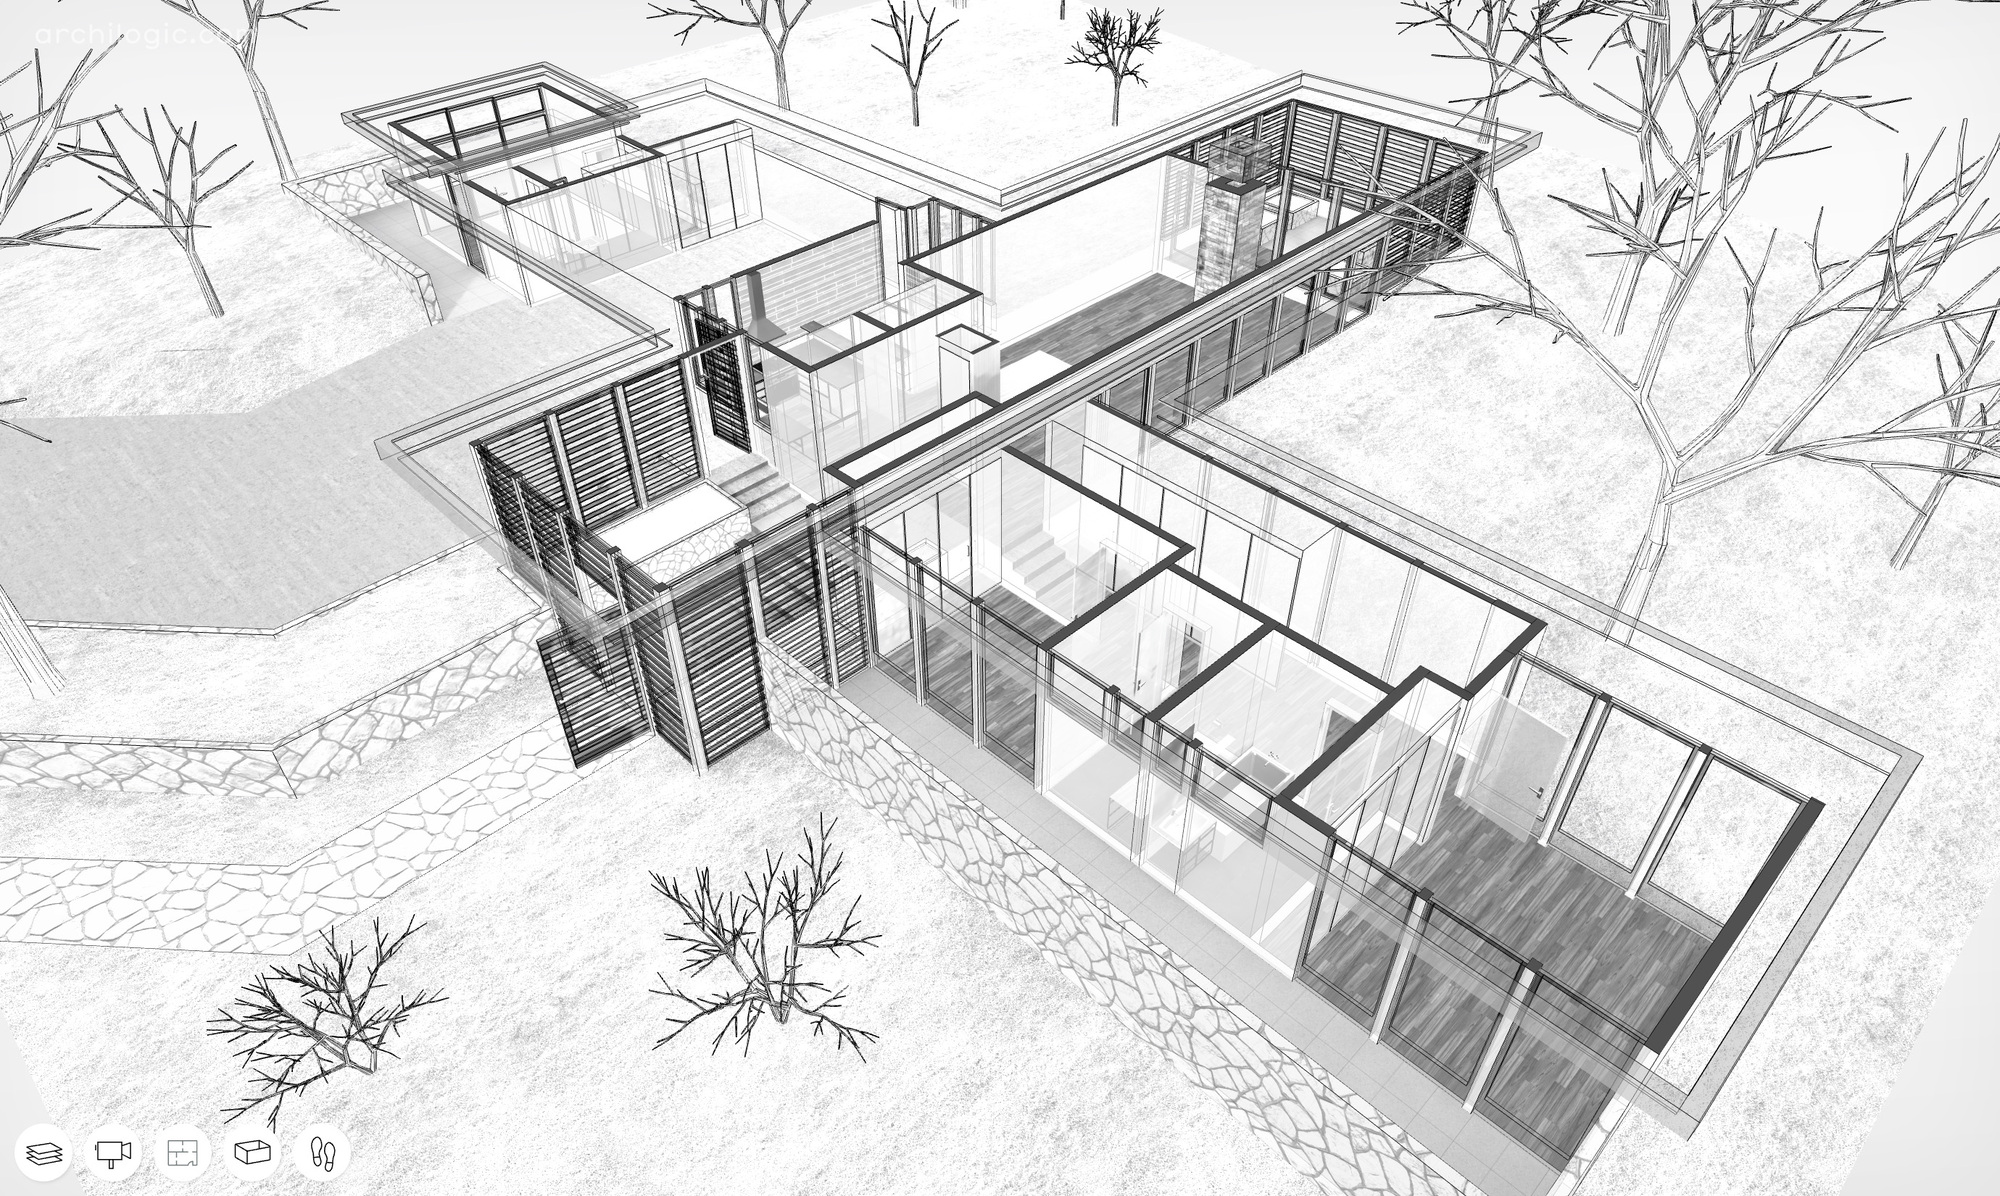 A virtual look inside the case study house 12 by whitney r smith courtesy